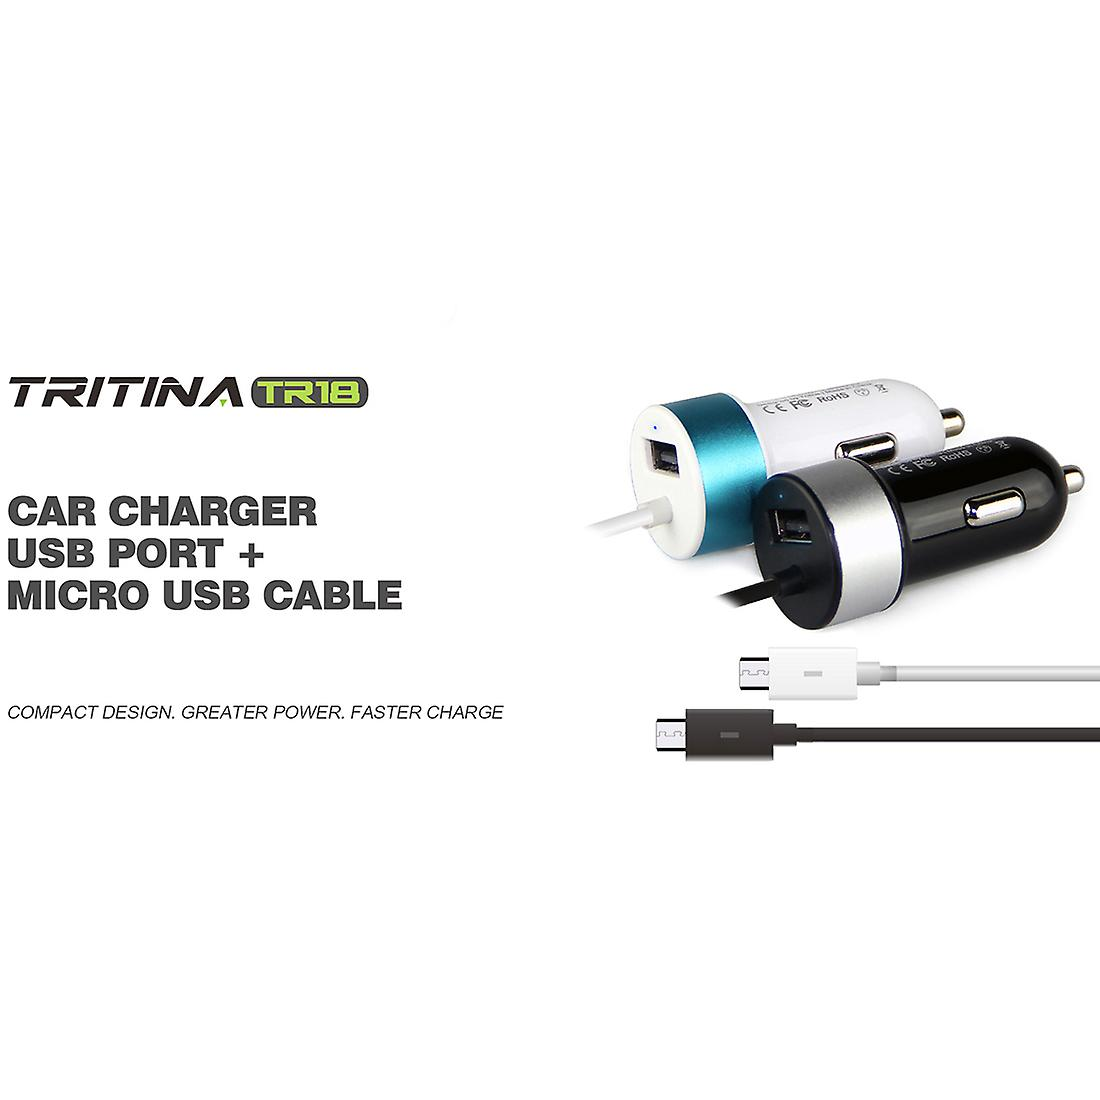 Tritina USB Car Charger Anti Fire Shell USB Port + Charge Line Input 12V/24V Output 5V 2.4A for iPhone, Samsung, Other Mobile Phone Tablet PC, Long time Warranty